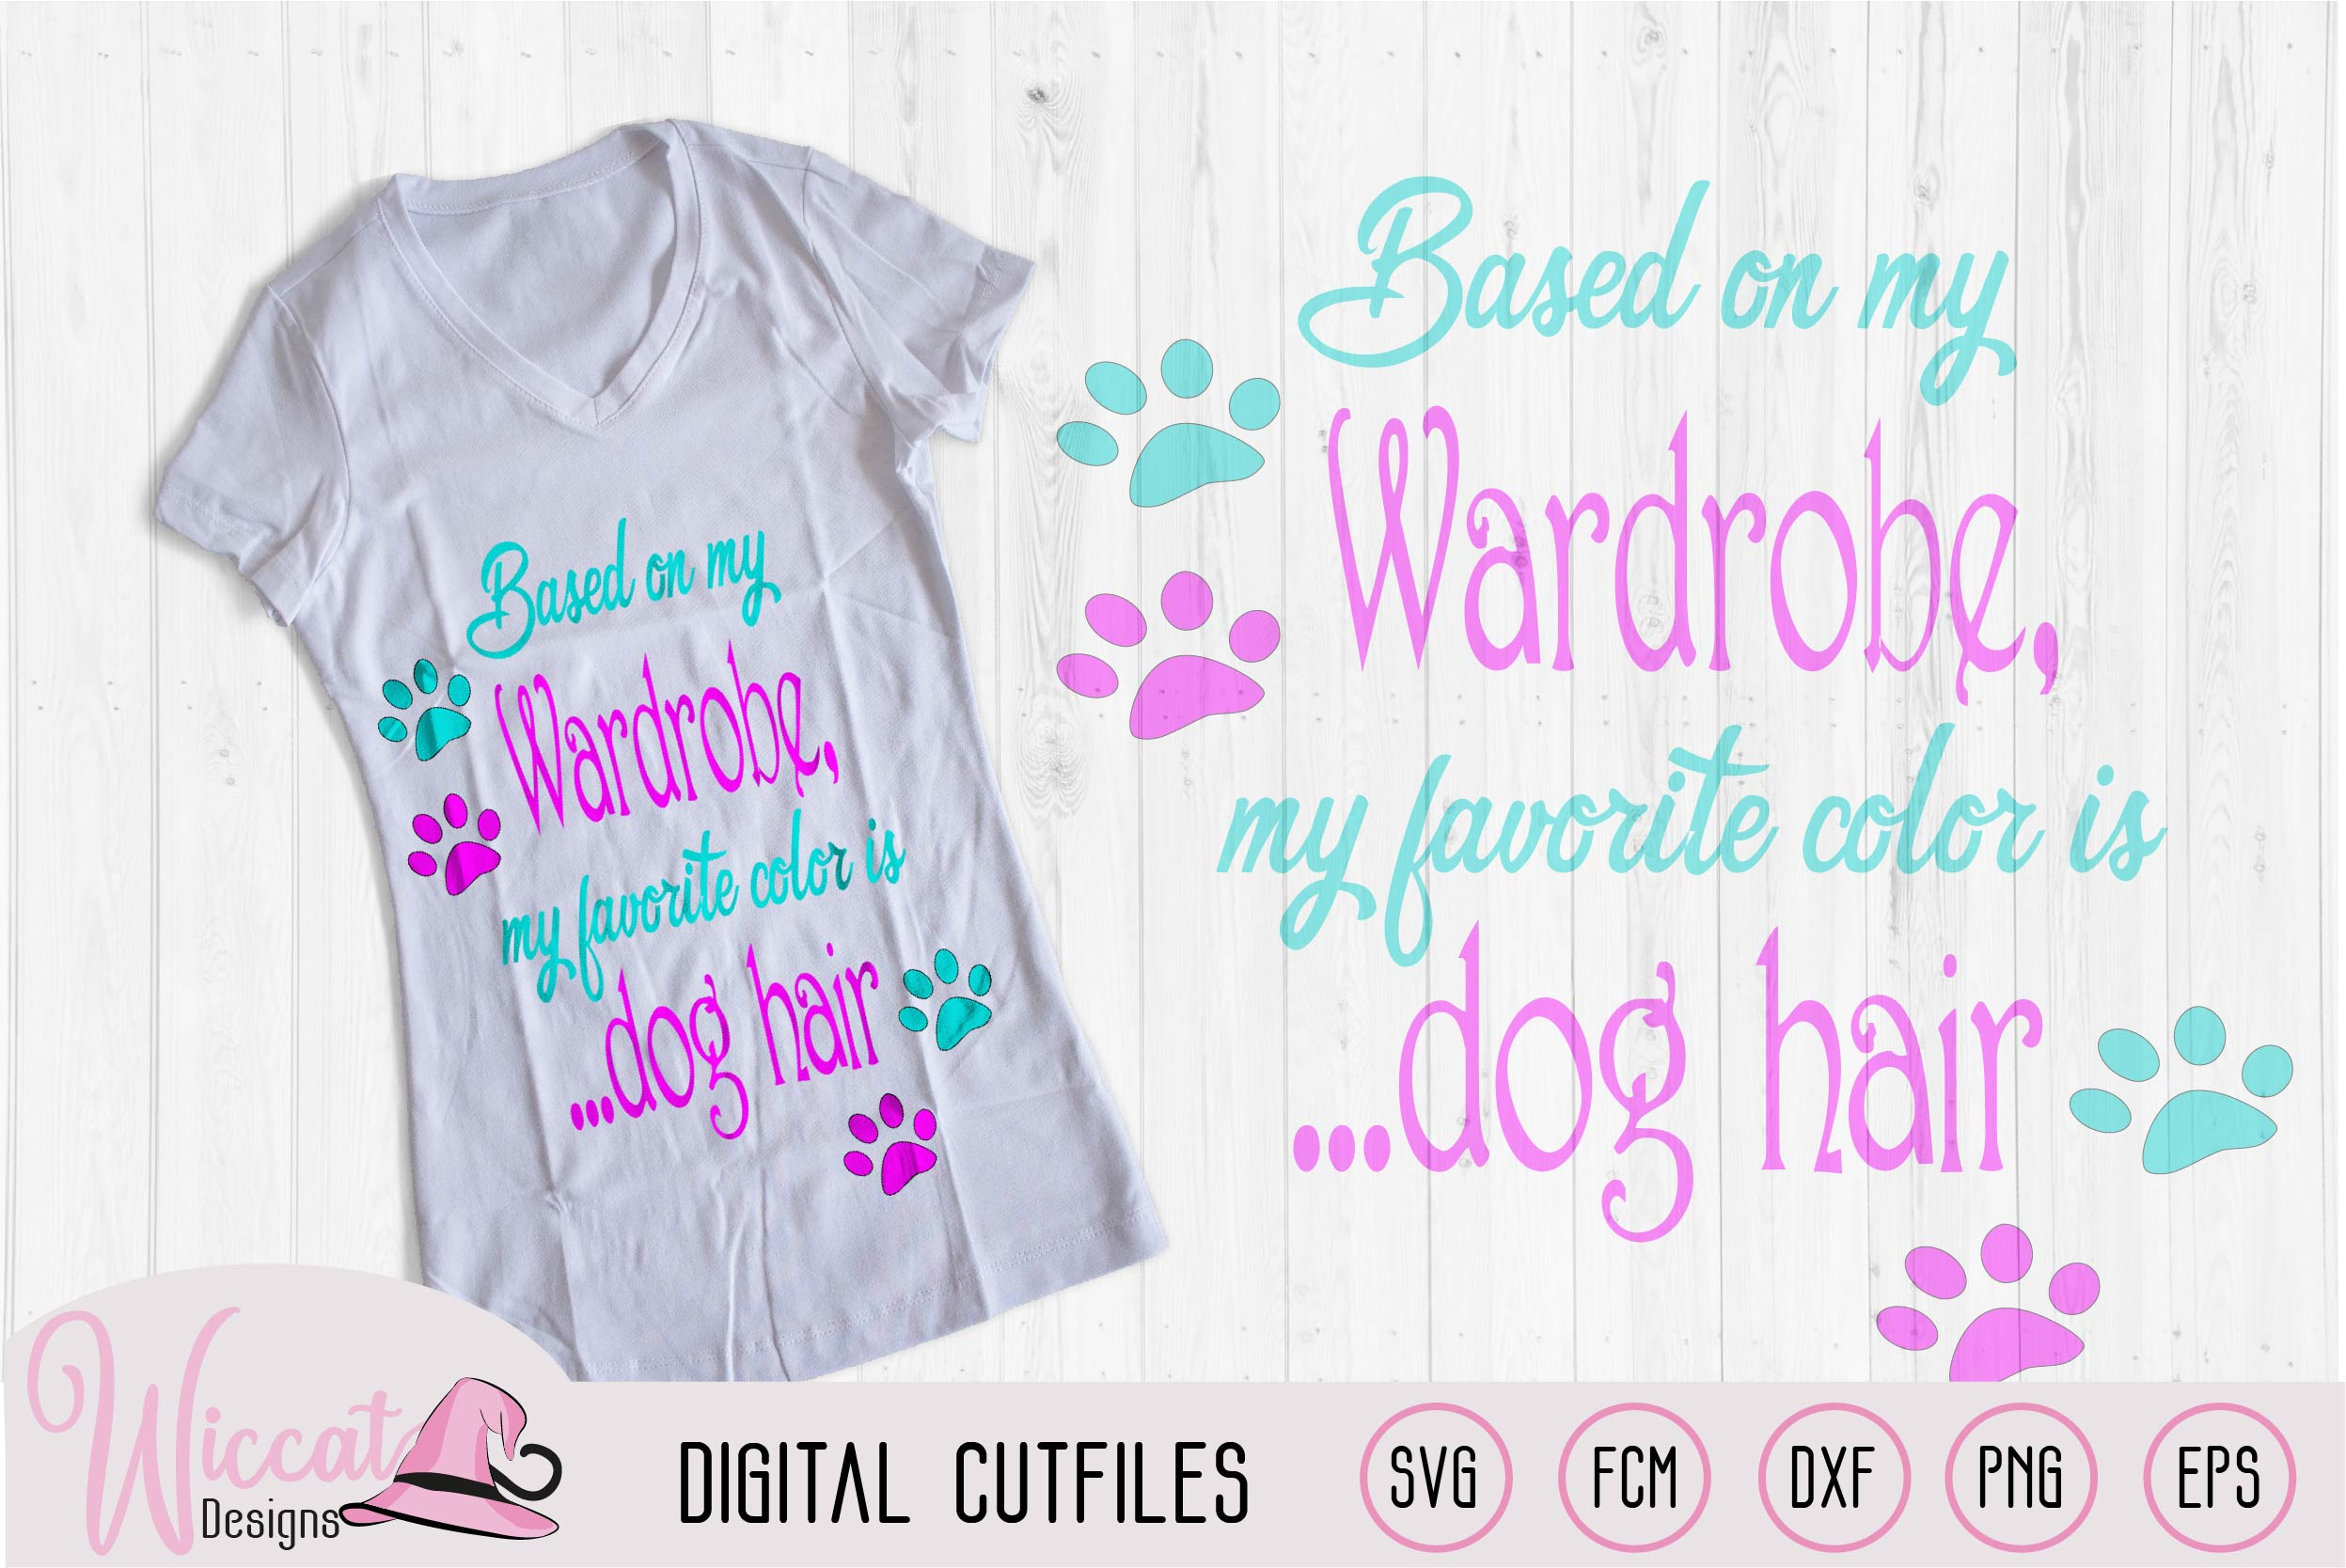 Dog quotes Bundle, Dog trainer, coffee and dog hair example image 3